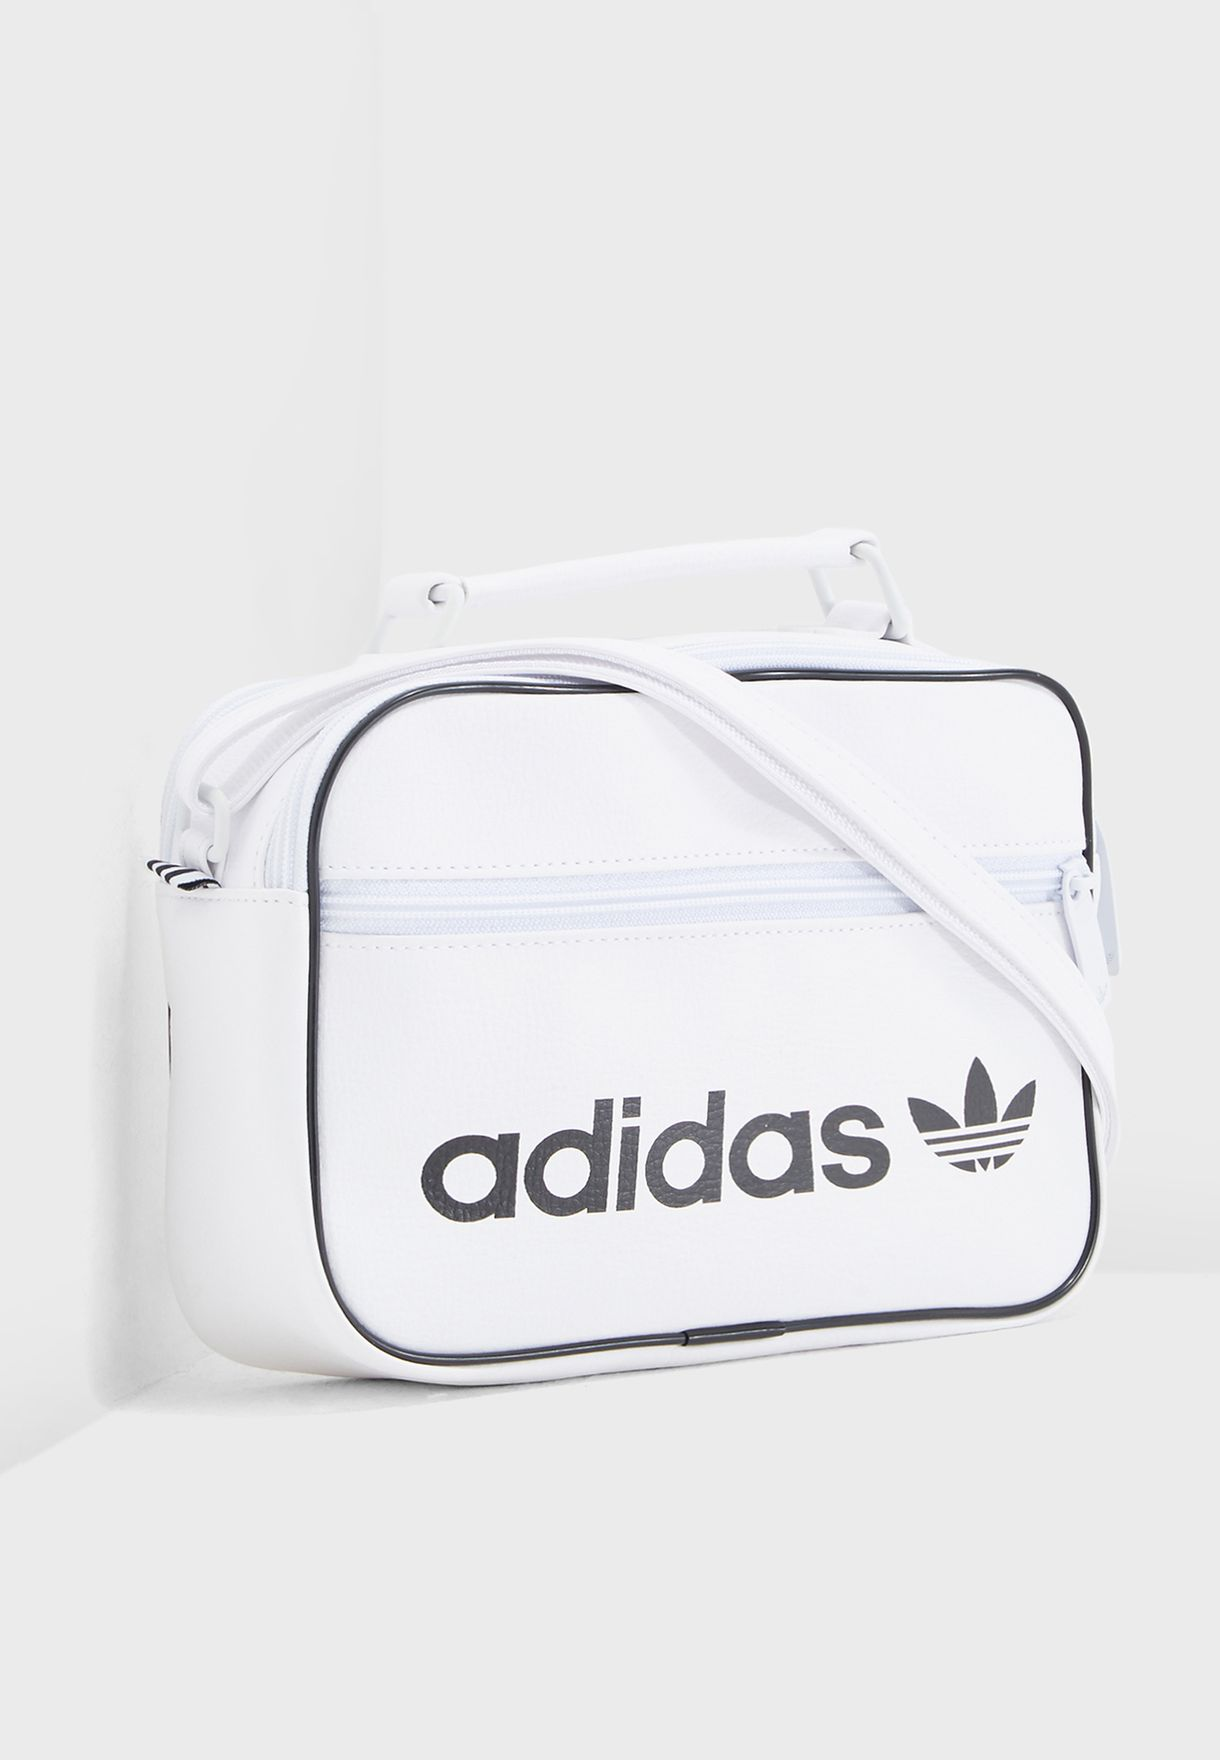 cfaeca4e9a98 Shop adidas Originals white Mini Airliner Vintage Messenger DH1005 ...